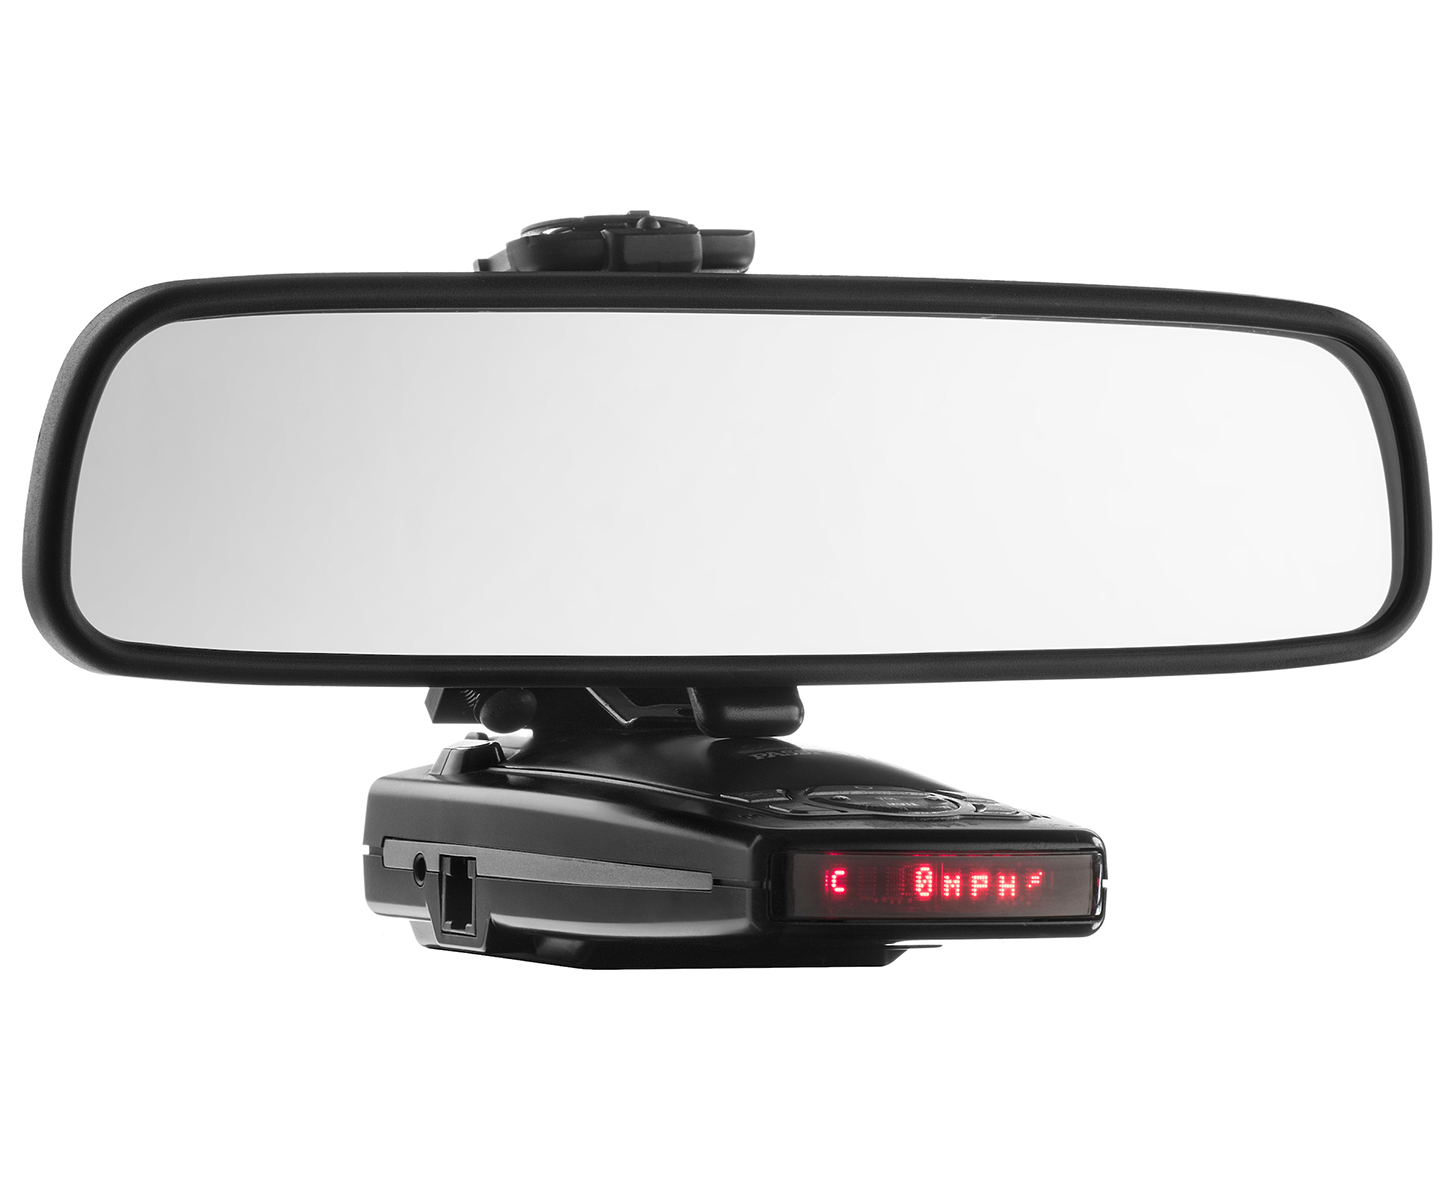 mirror mount radar detector bracket escort 9500ix 8500x50 x70 s55. Black Bedroom Furniture Sets. Home Design Ideas